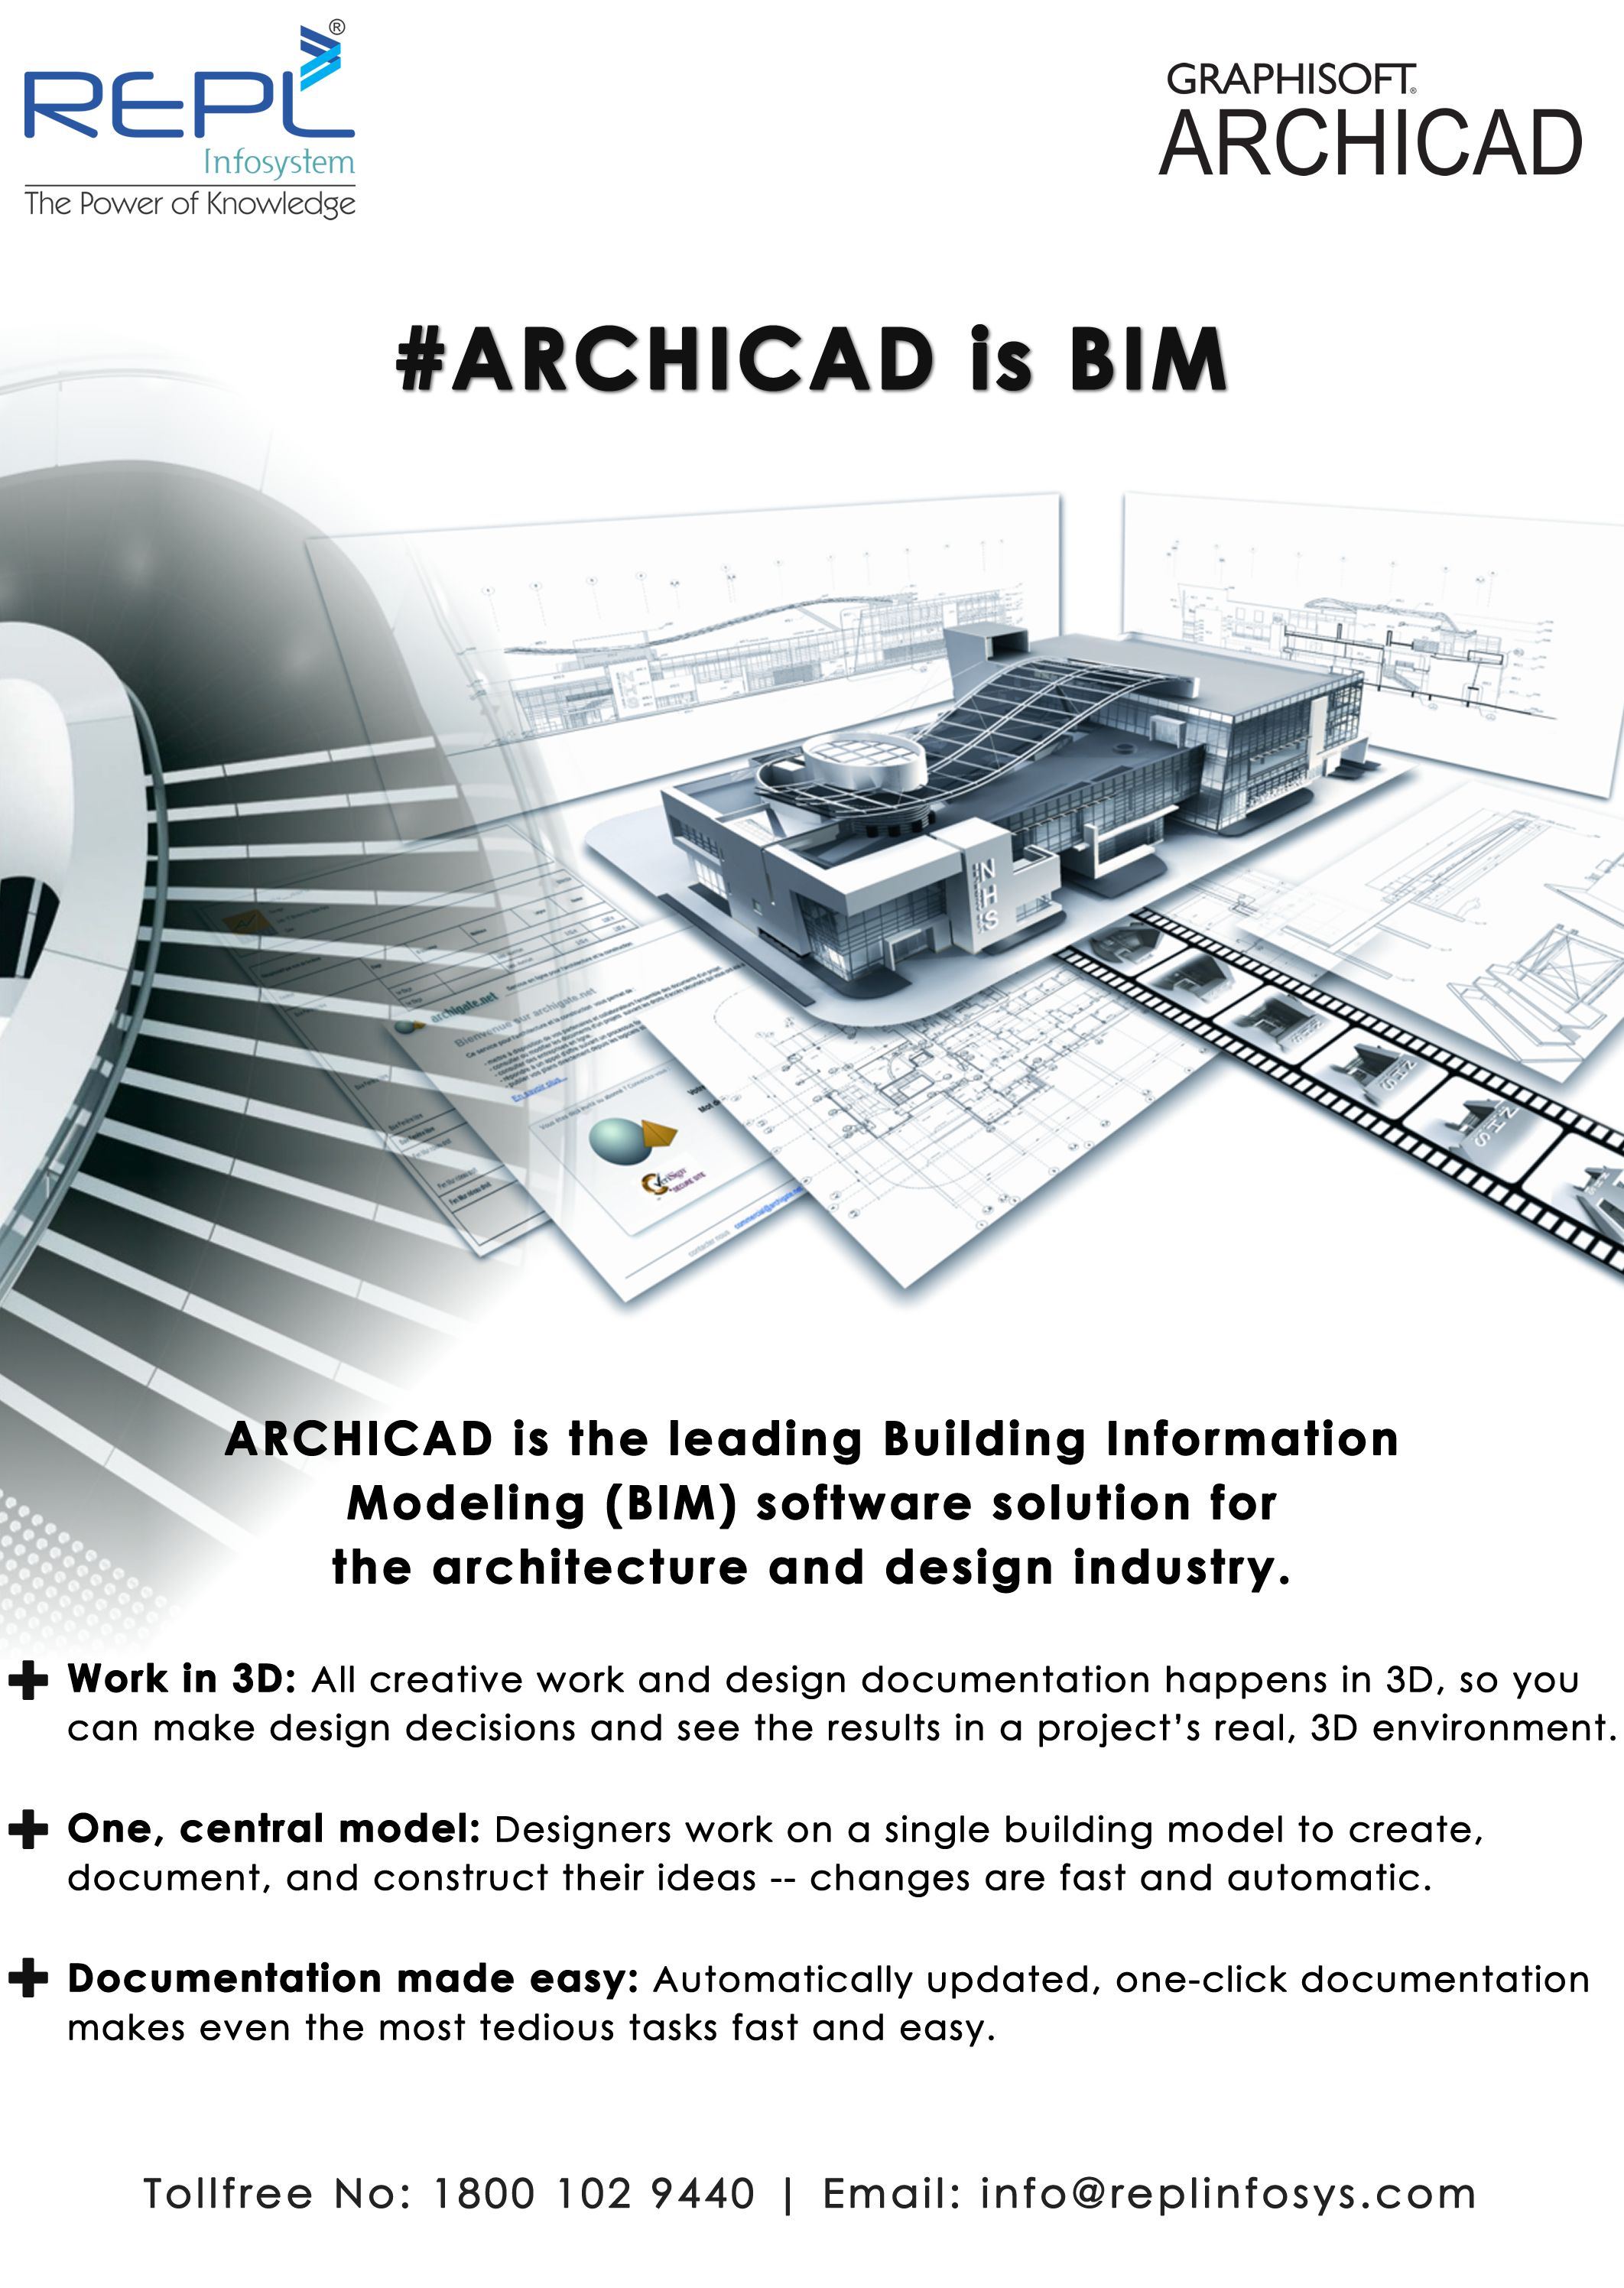 Archicad Is The Leading Building Information Modeling Bim Software Solution For The Architecture A Building Information Modeling Building Design Software Bim